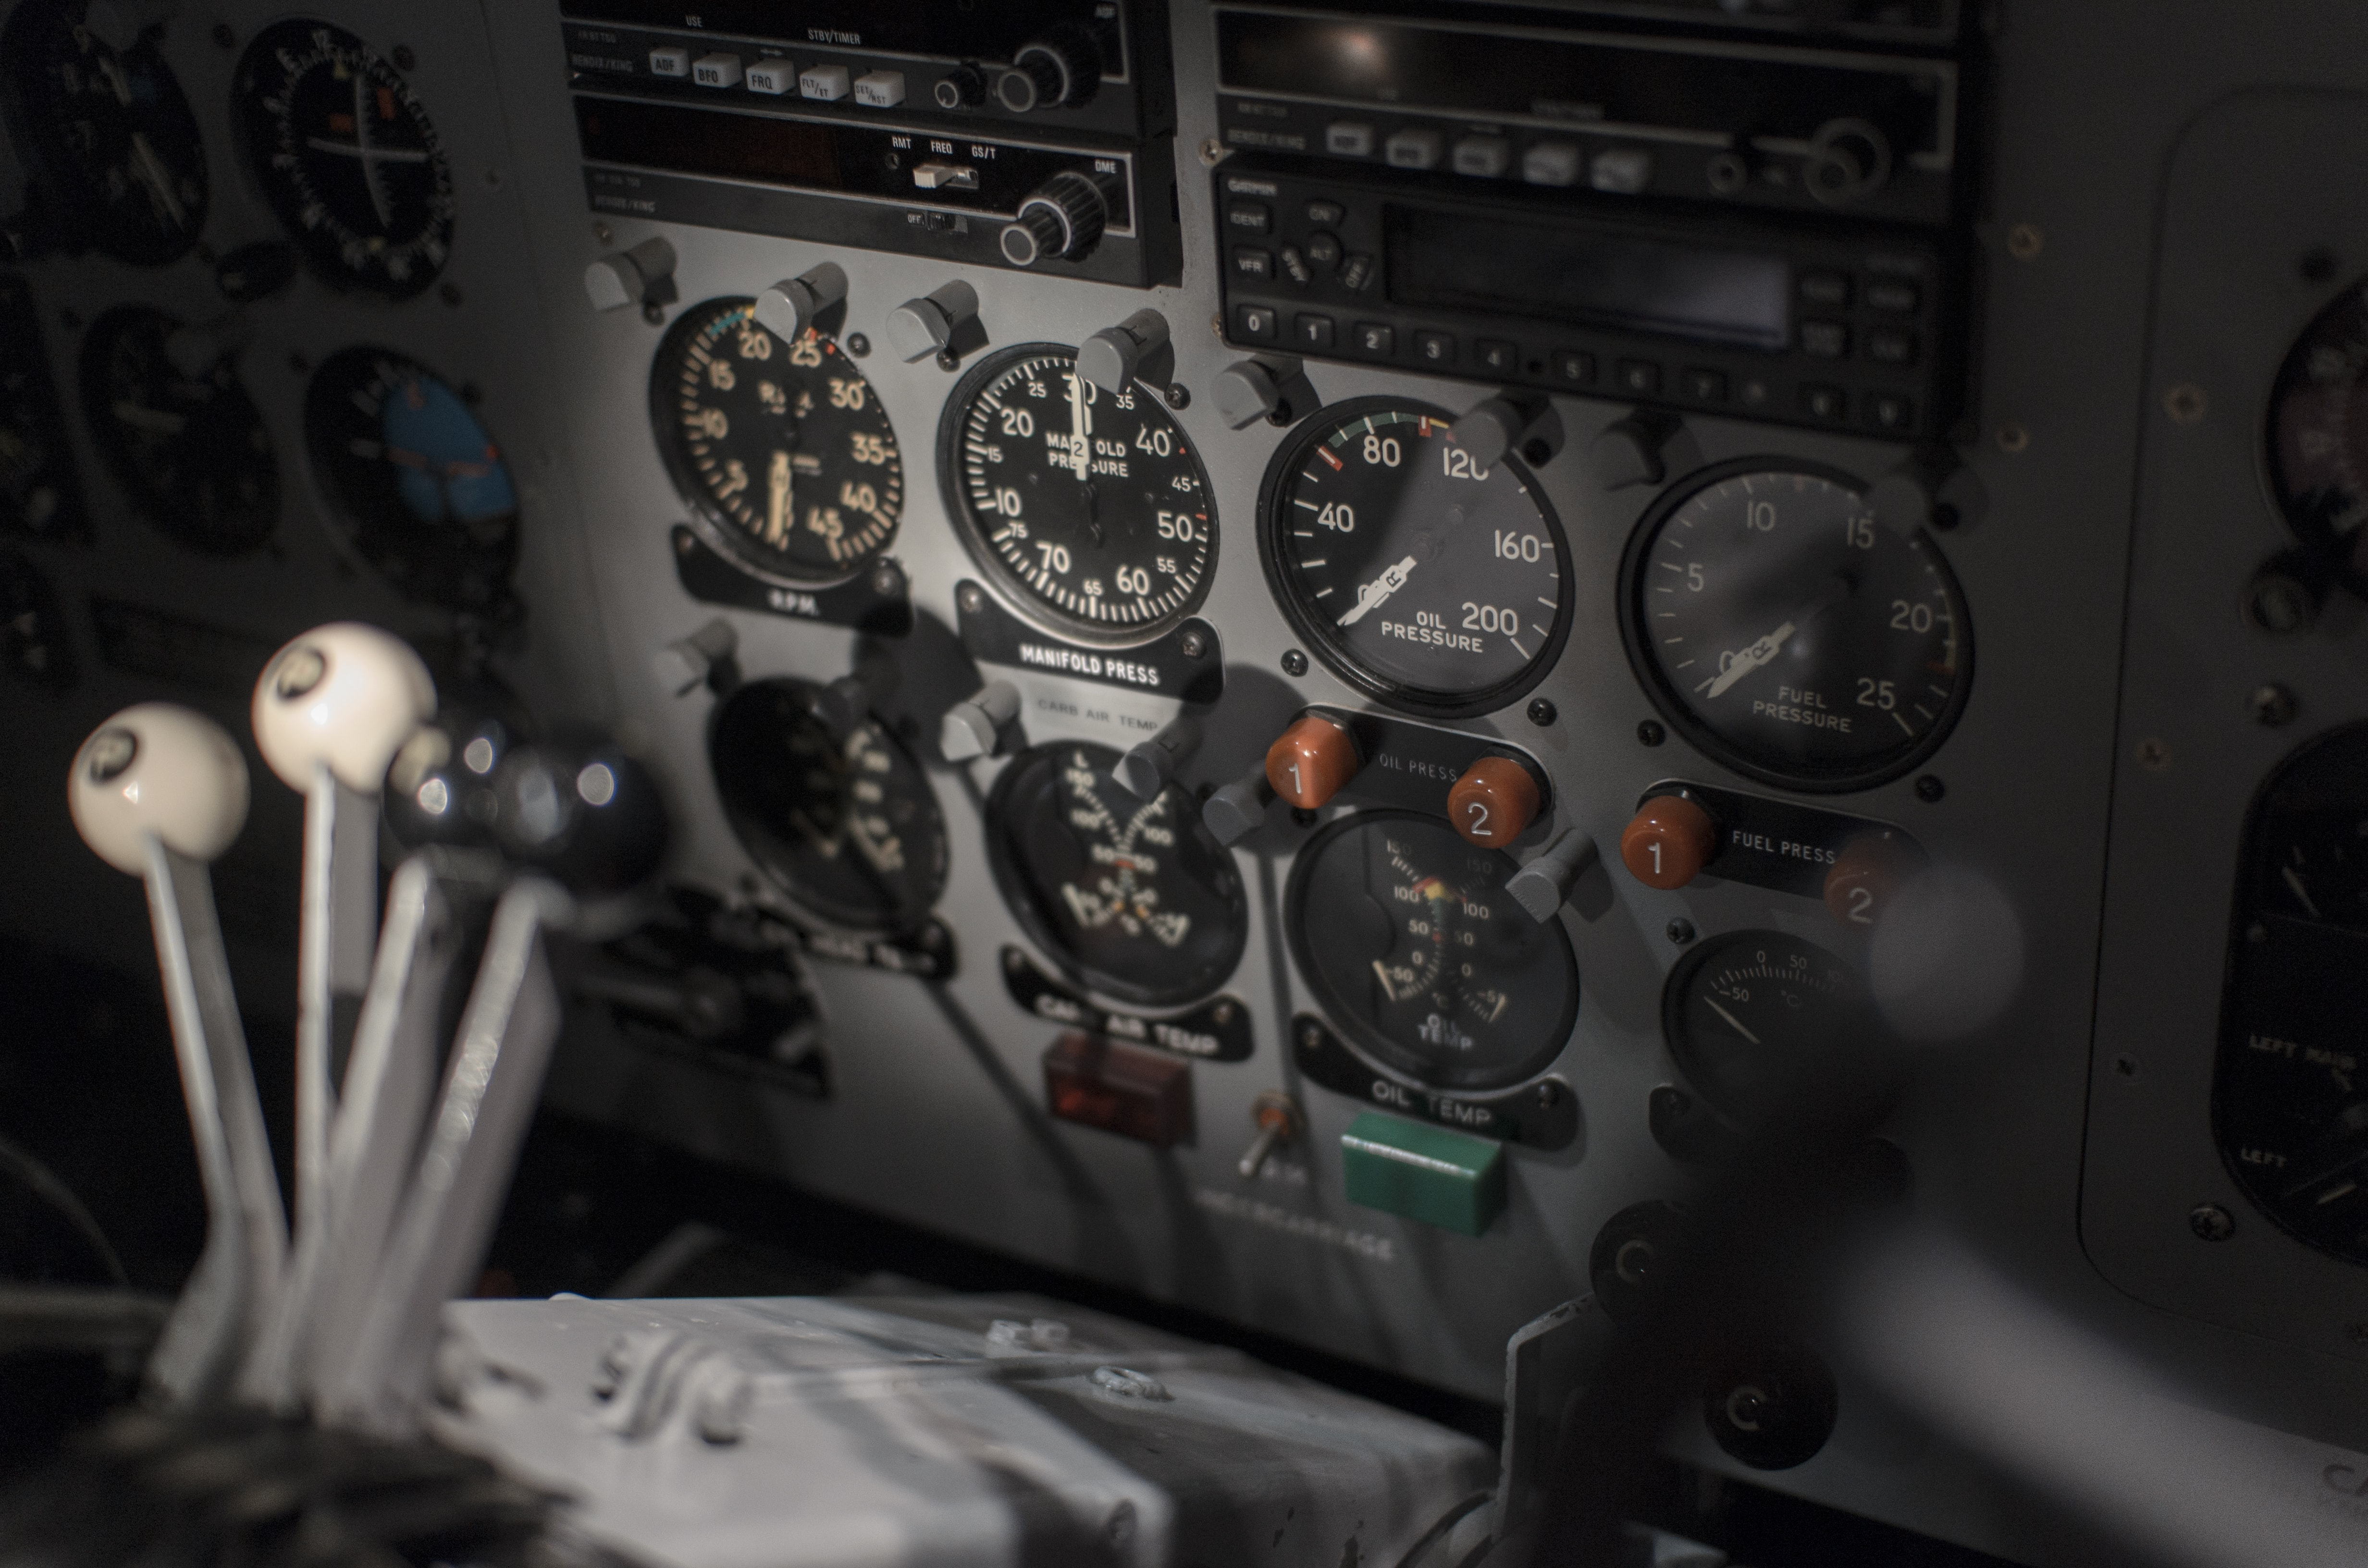 Dashboard in the pilot's cockpit